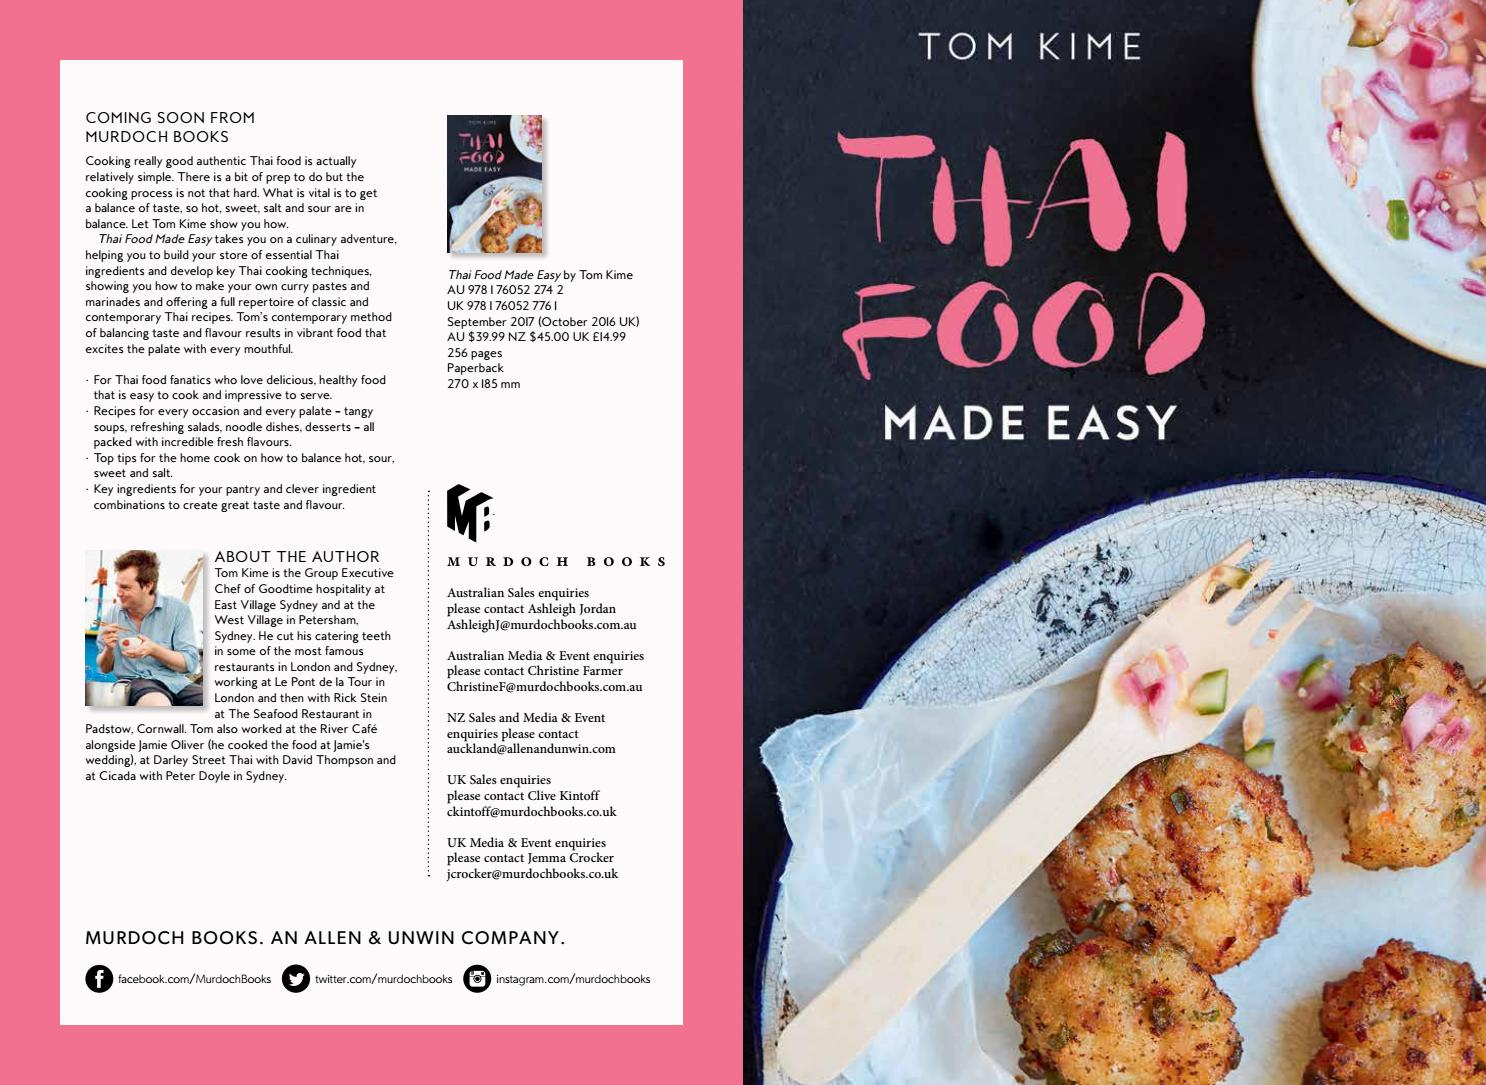 Thai food made easy september 2017 by murdoch books issuu forumfinder Image collections